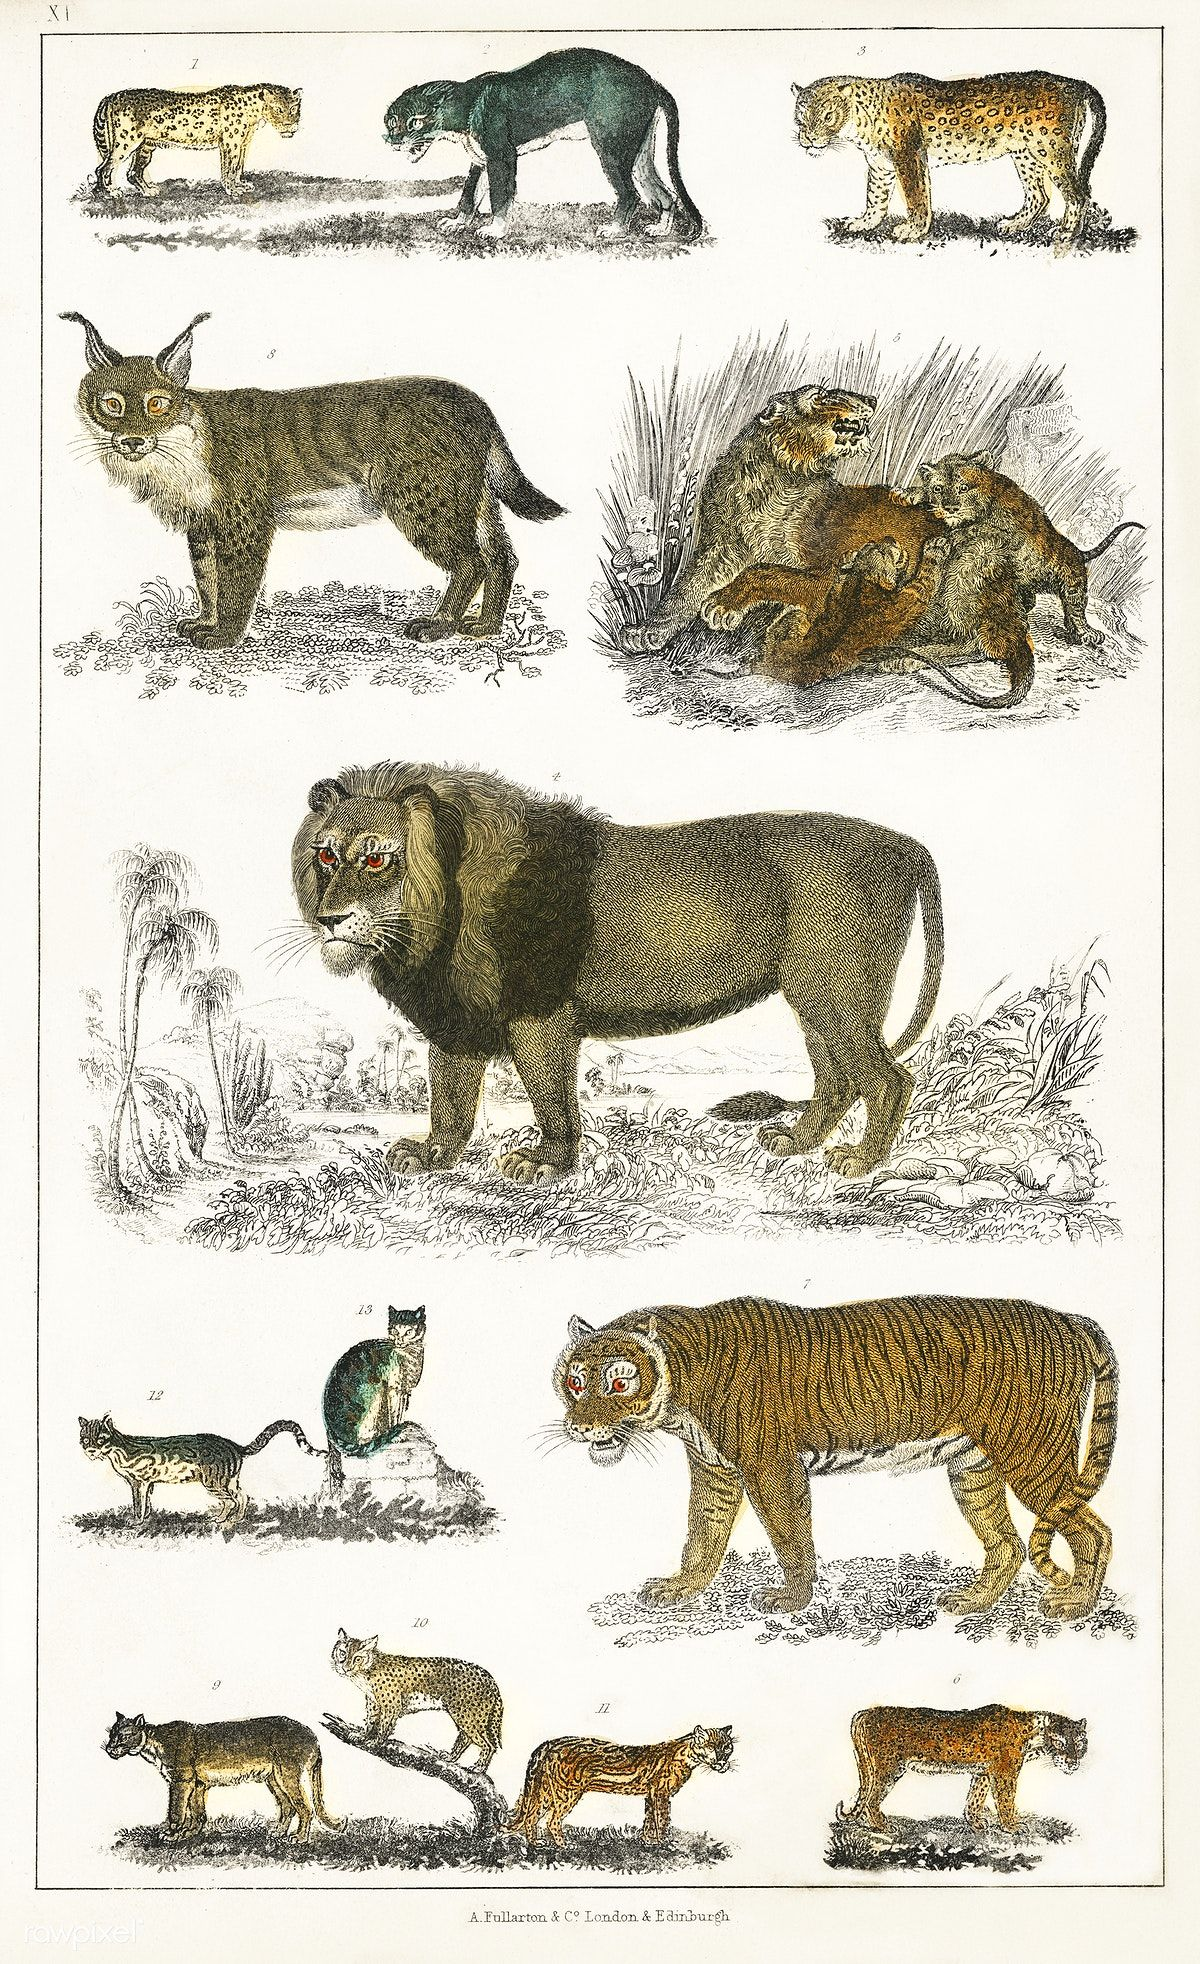 Animals in history